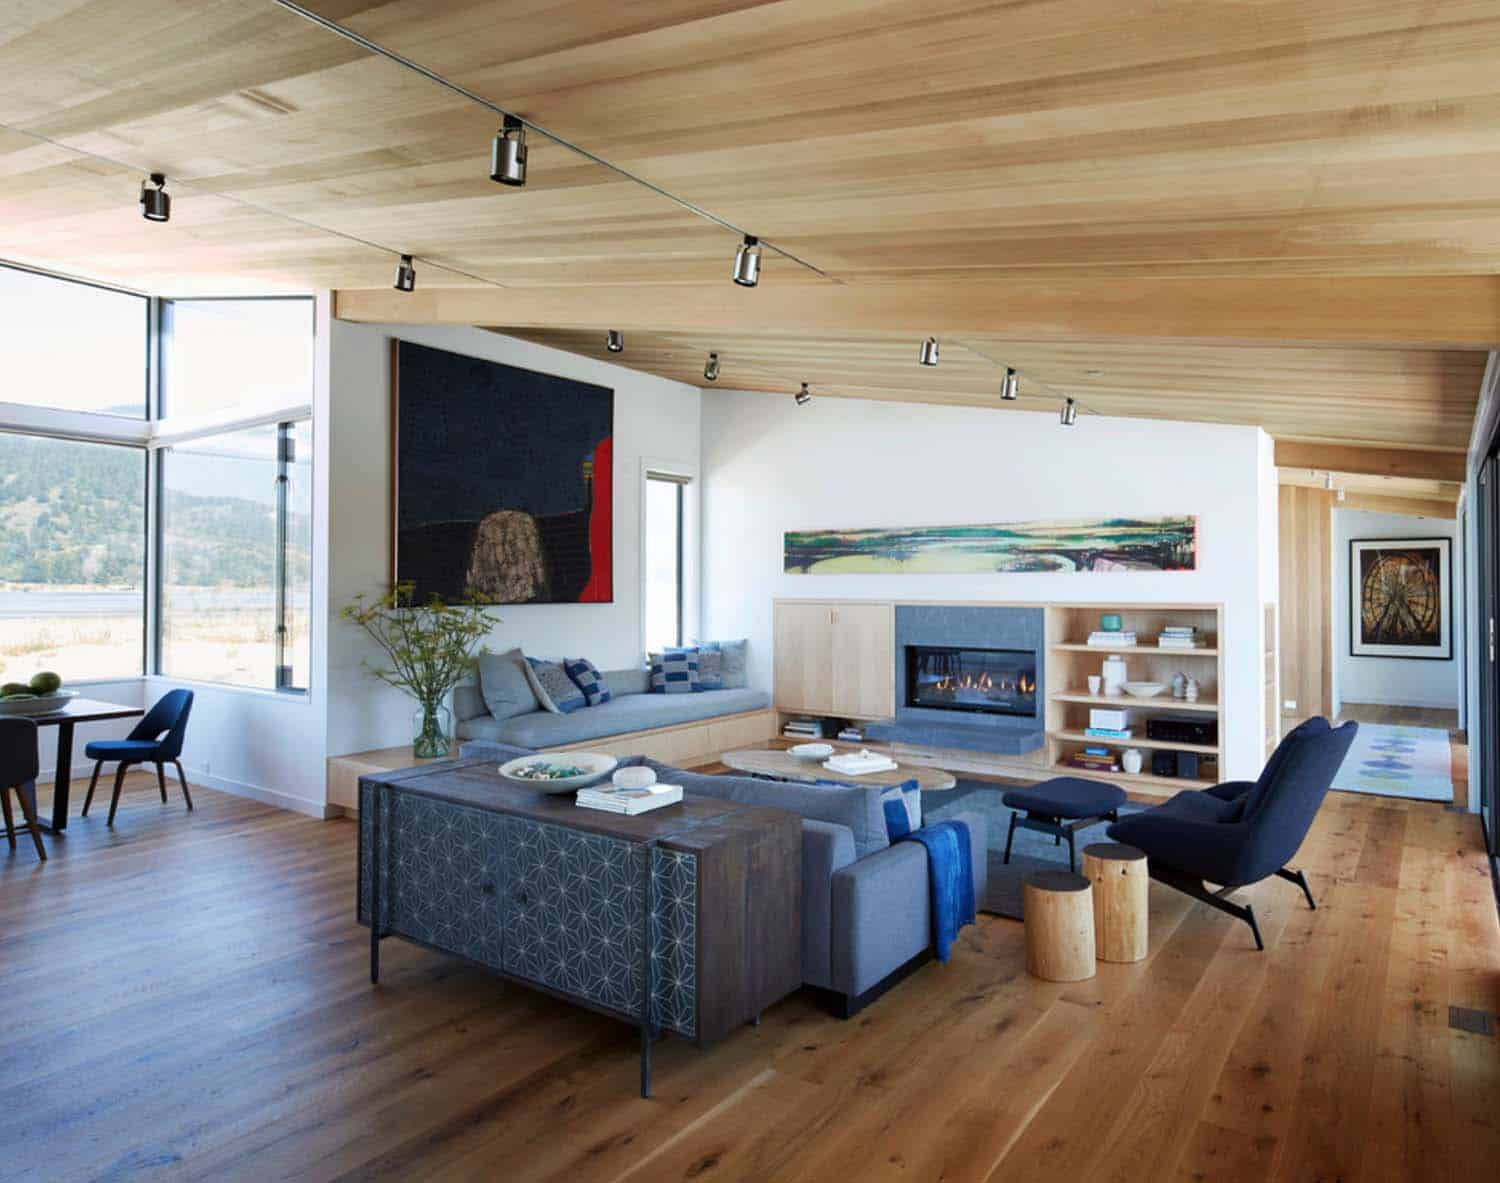 stinson-beach-lagoon-residence-turnbull-griffin-haesloop-07-1-kindesign